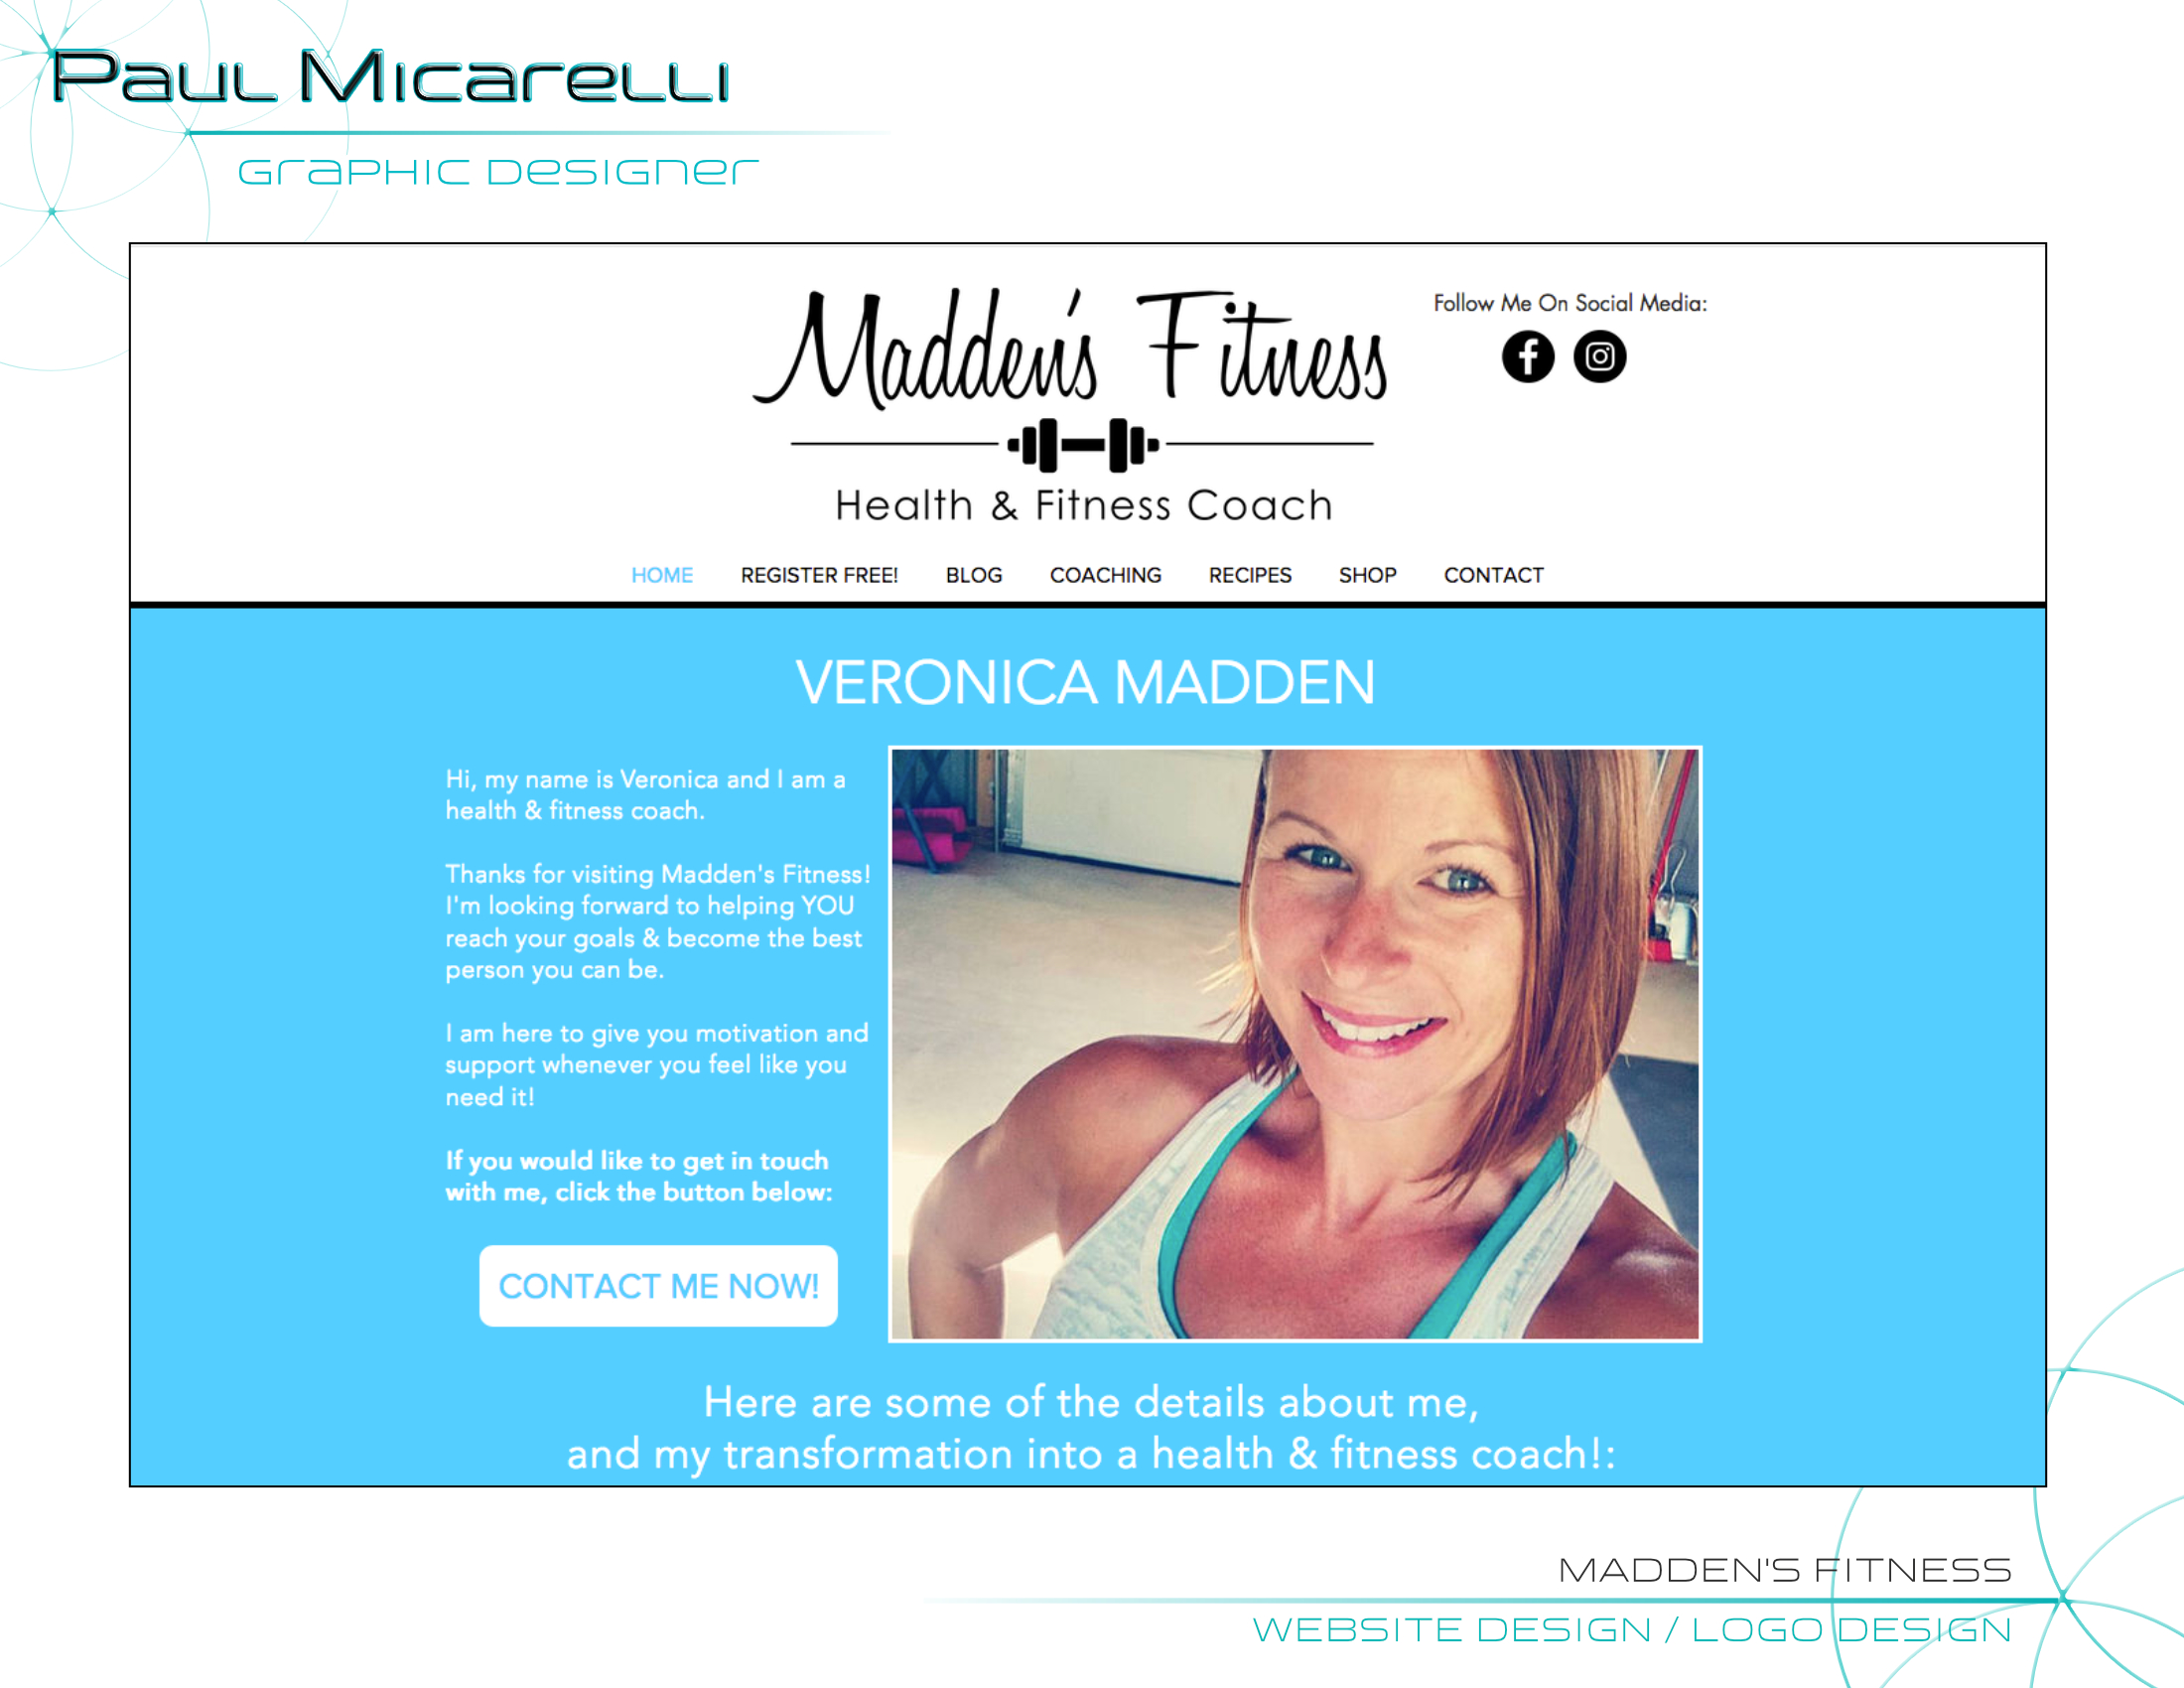 Paul-Micarelli-Maddens Fitness Website